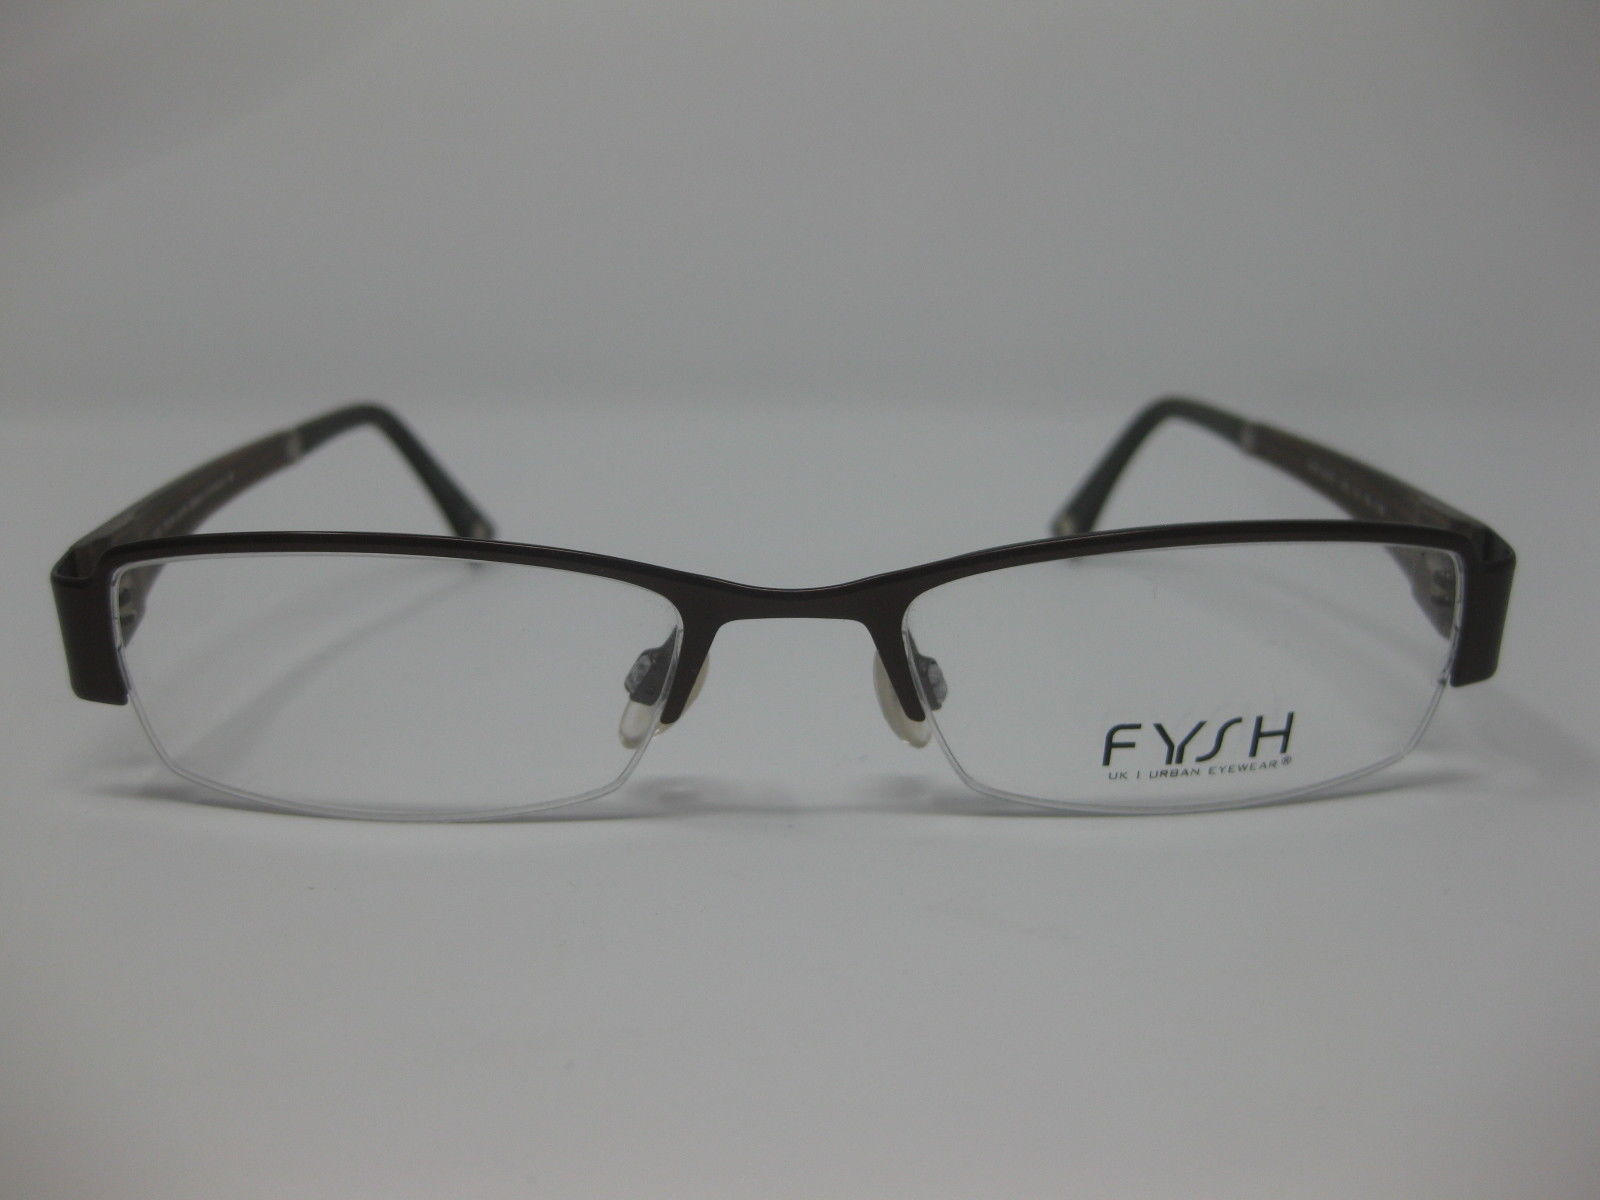 Primary image for Fysh UK Eyeglasses 3405 120 51-18-135 New Brown